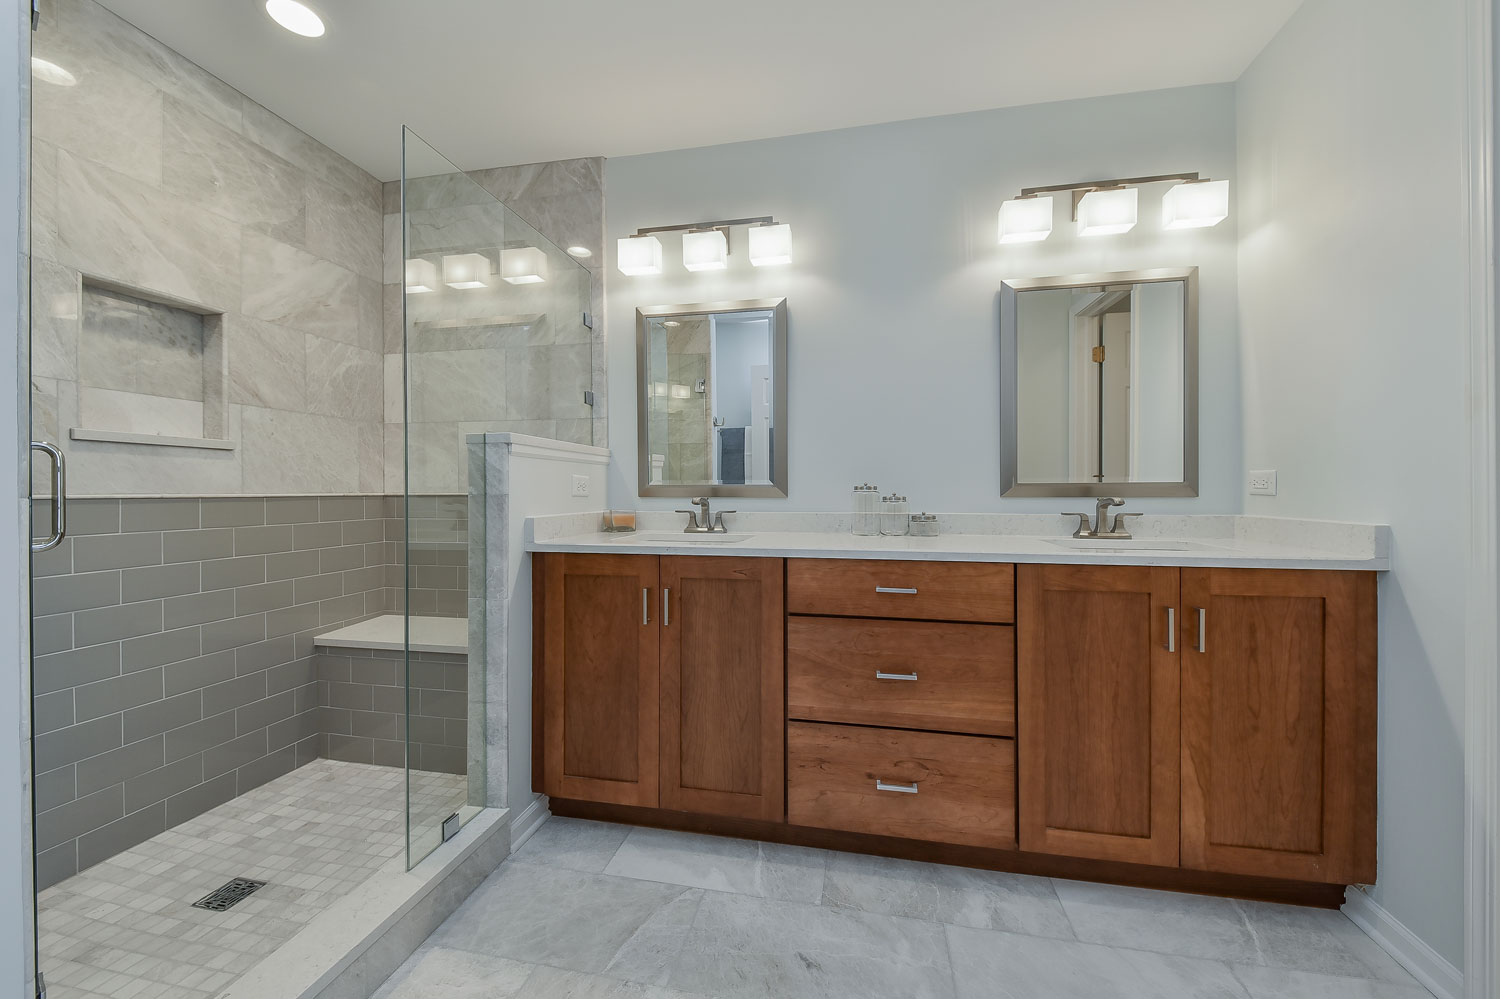 Richard S Master Bathroom Remodel Pictures Home Remodeling Contractors Sebring Design Build